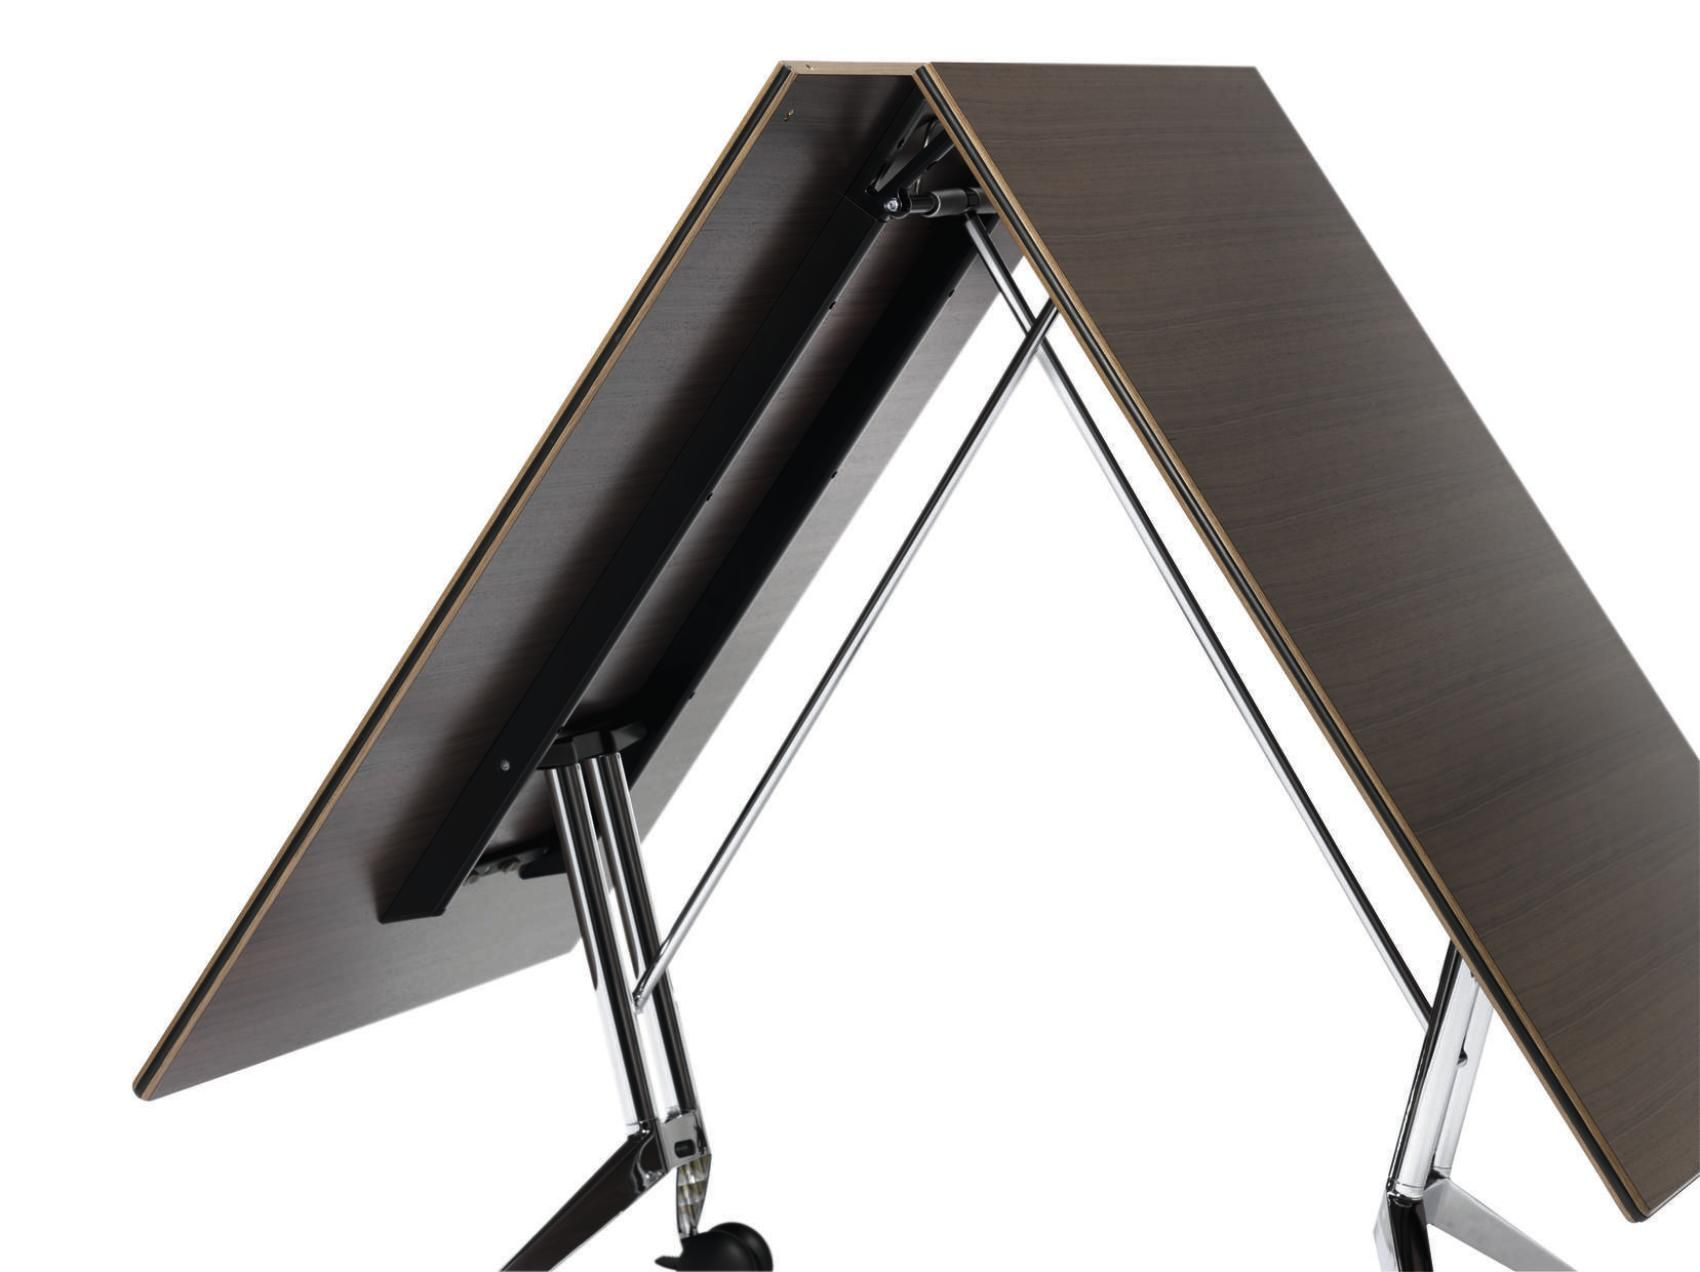 CONFAIR Folding Table Foldable Conference Table Design Andreas - Fold away conference table